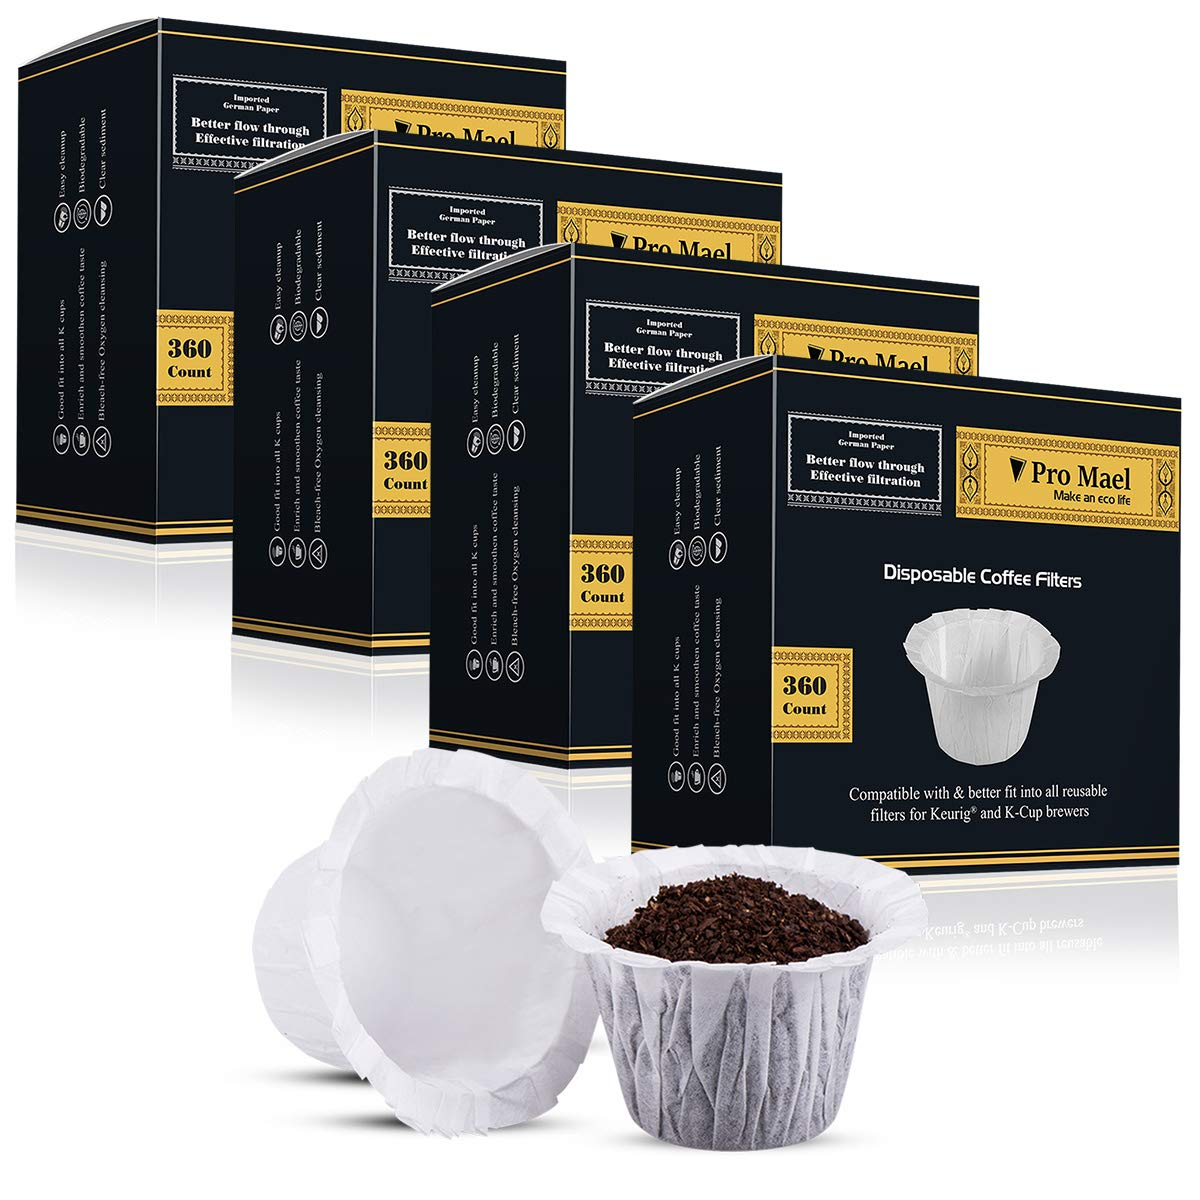 Disposable Coffee Filters 4 Pack 1440 Counts Coffee Filter Paper for Keurig Brewers Single Serve 1.0 and 2.0 Use with All Brands Reusable K Cup Filter by PRO MAEL